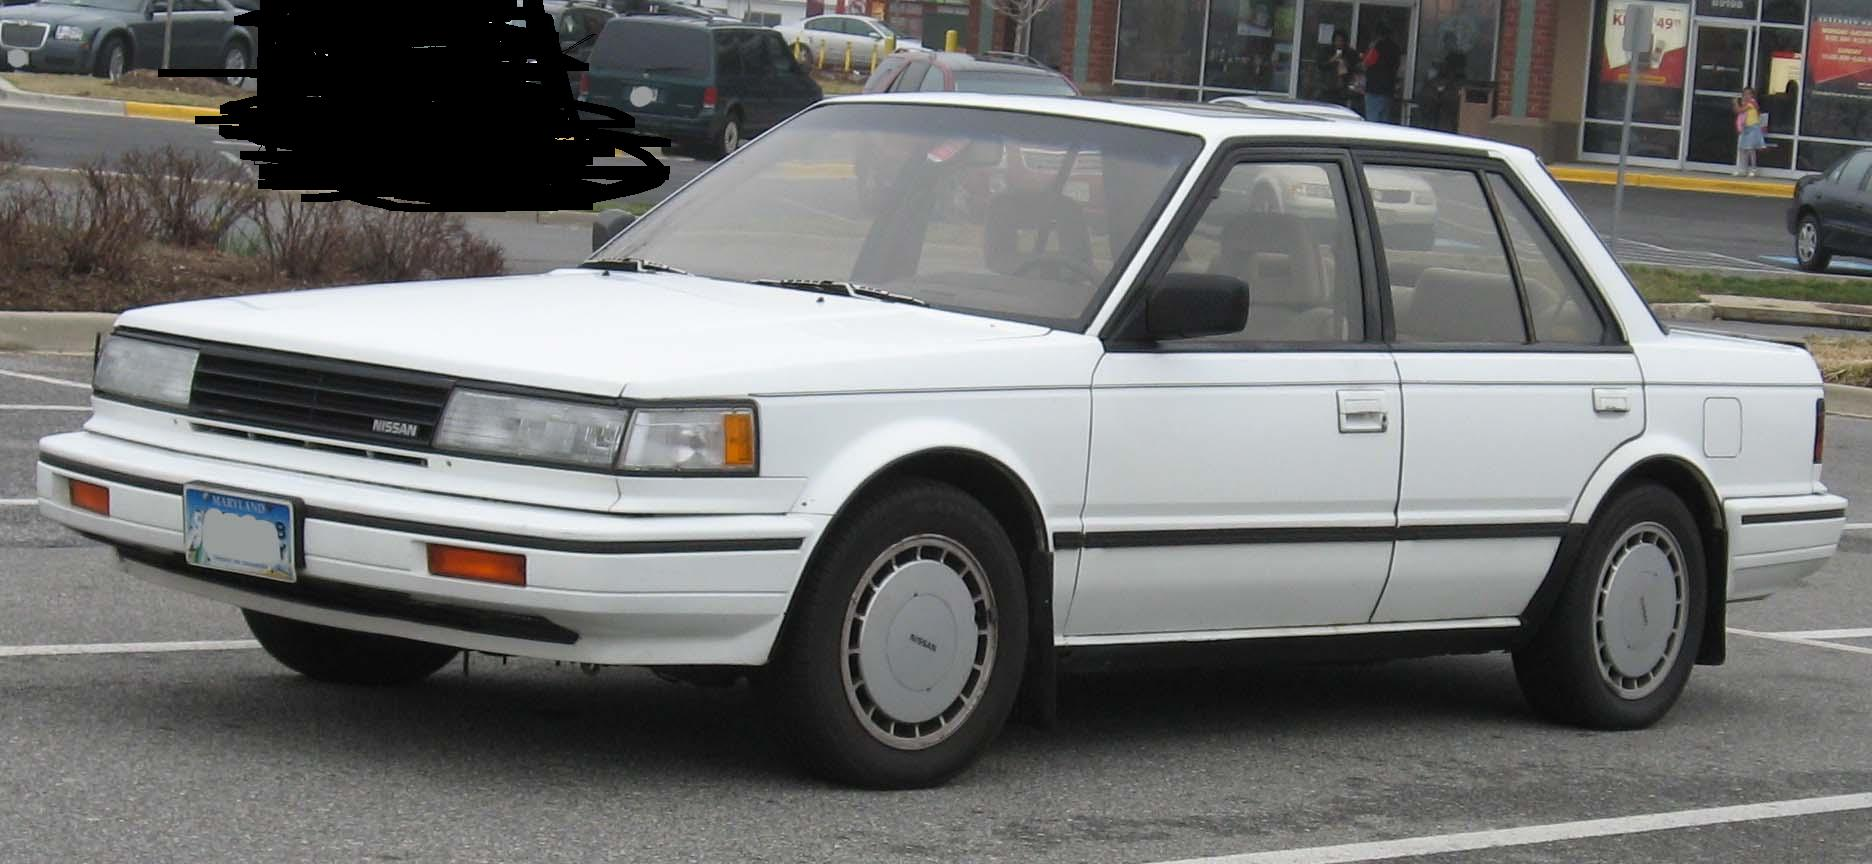 1988 RED NISSAN MAXIMA (LUCAYA, FPO)